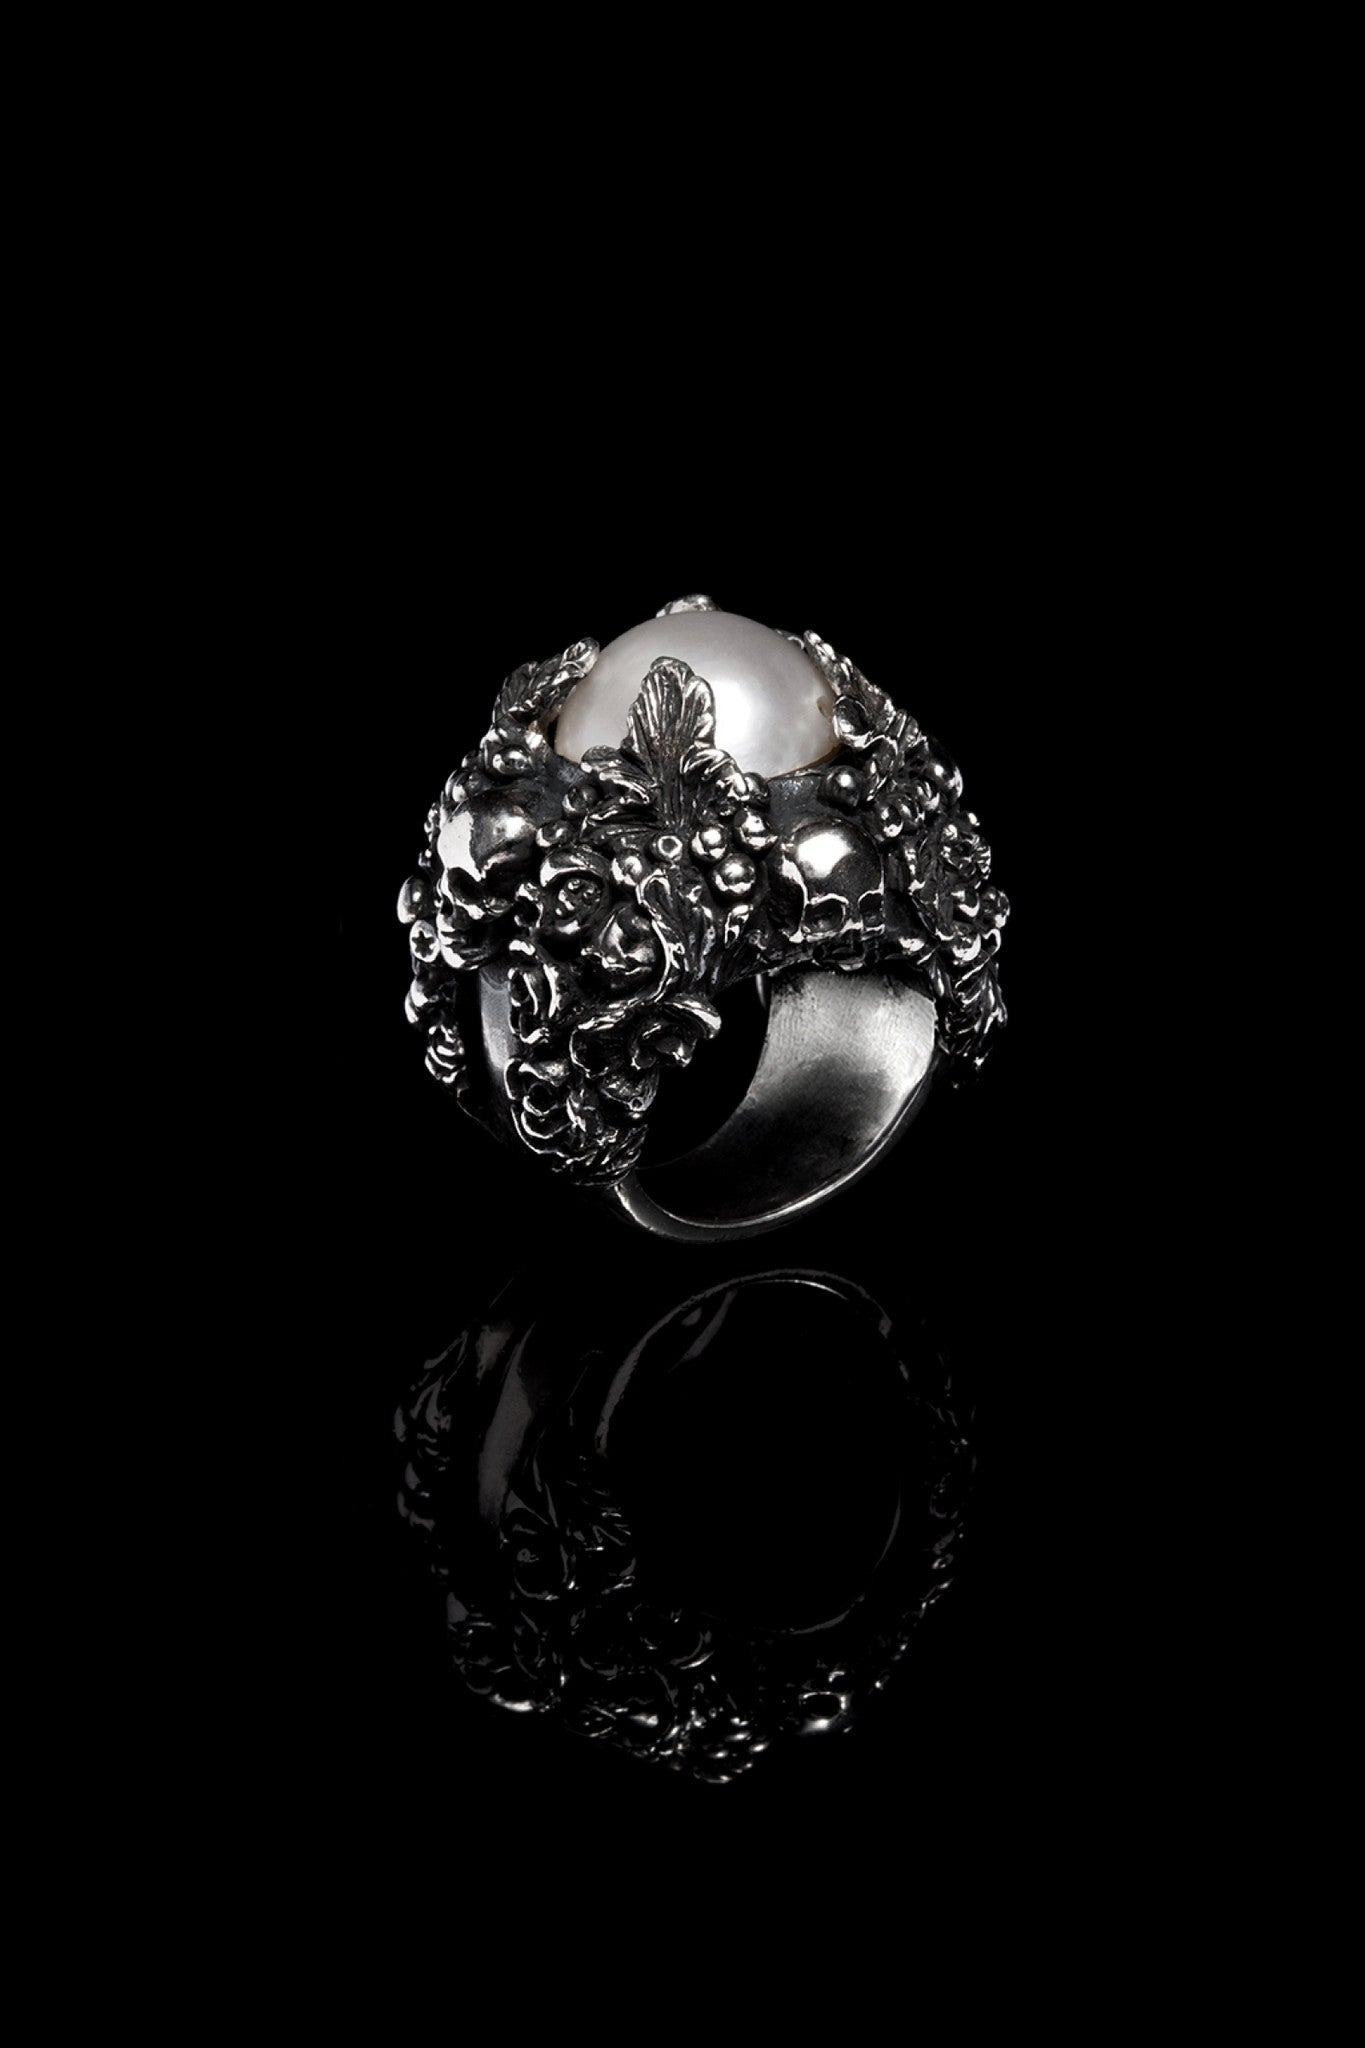 Ugo Cacciatori, Silver, Jewelry, Sterling Silver, Ring, Light Pearl, Light Pearl and Black Diamonds, Light Pearl and Brown Diamonds, Light Pearl and Emeralds, Light Pearl and Rubies, Light Pearl and Sapphires